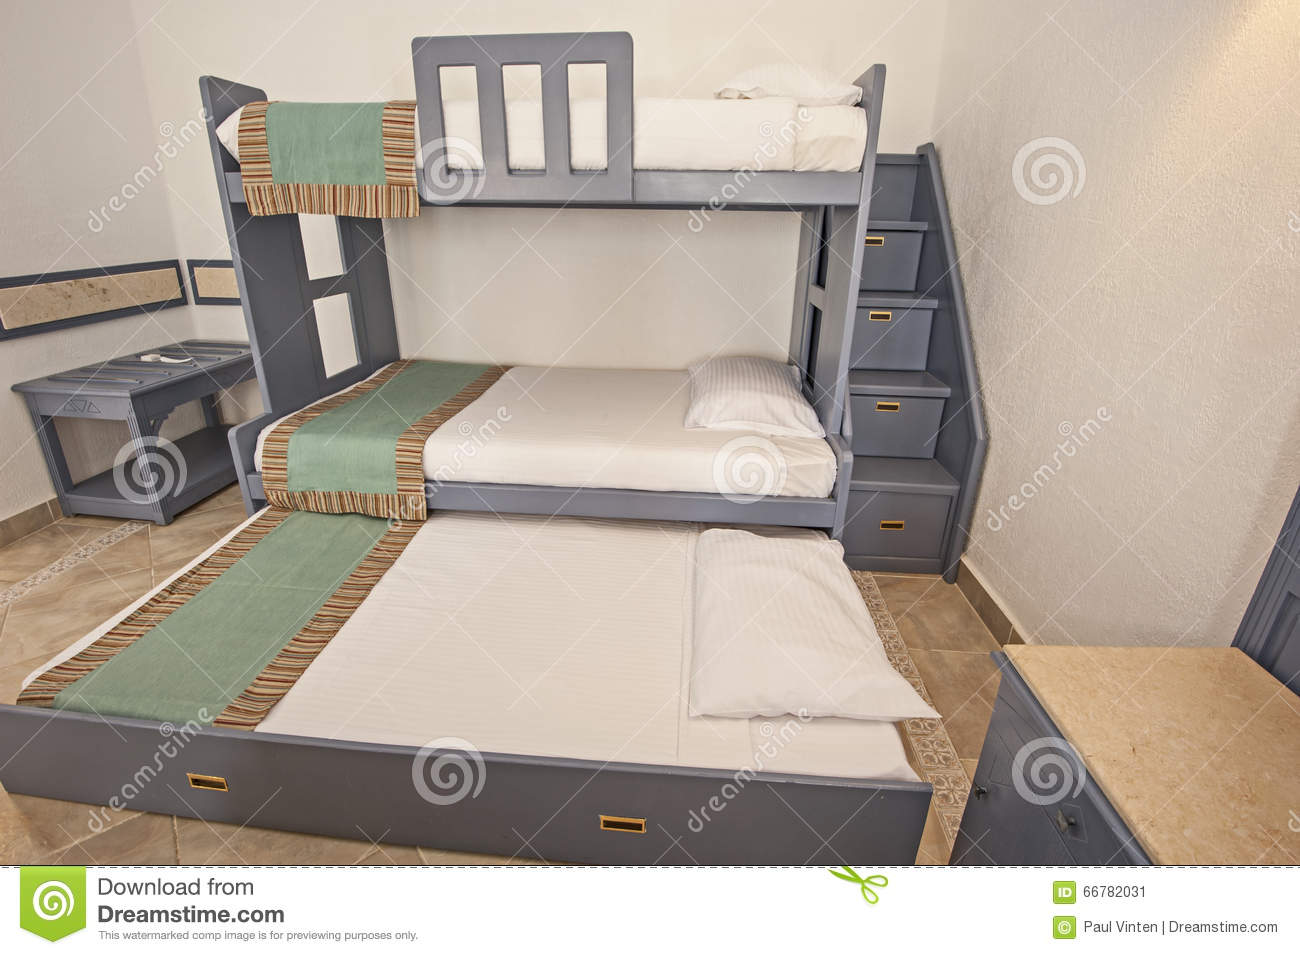 Bunk bed family bedroom concept idea stock photo image for Concept beds